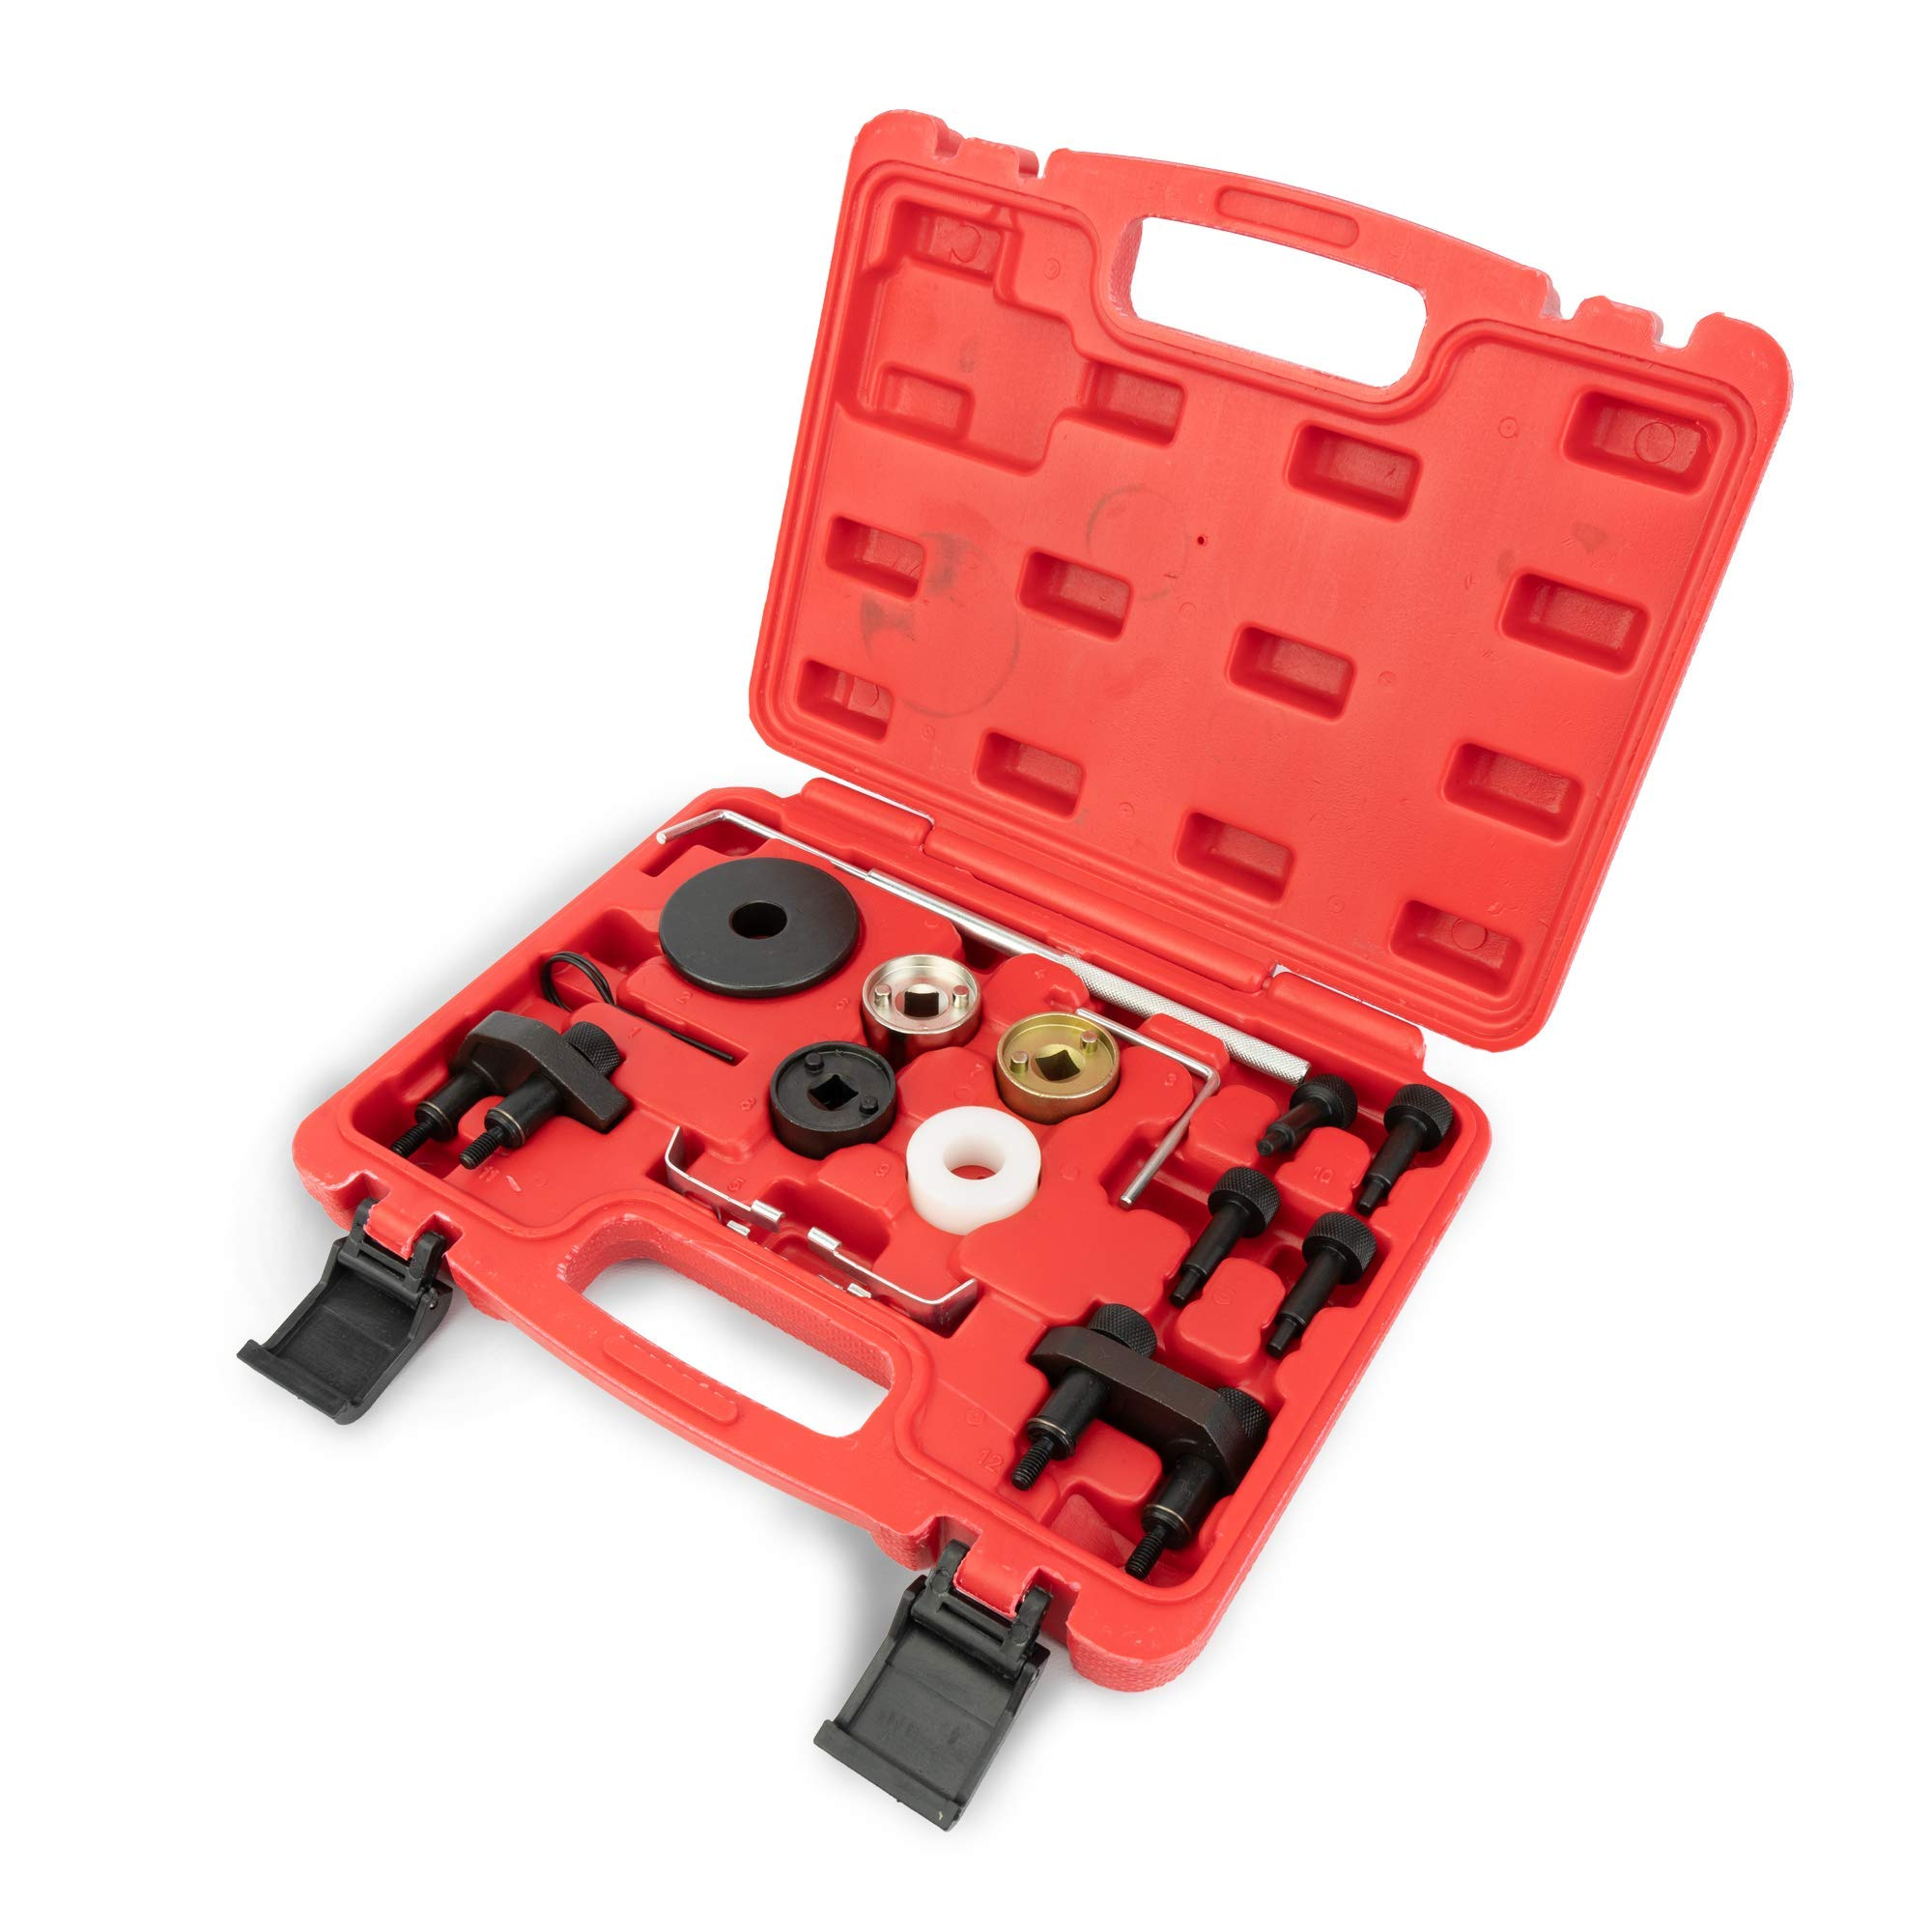 Replacement VAG Volkswagen Audi Timing Tool Kit - 1.8L, 2.0L R4 16V Turbo TSI, TSFI EA888 Engine - Replaces# T10352, T10368, T40098, T40011 & More - Audi Camshaft & Crankshaft Timing Position by Delray Auto Parts (Image #1)